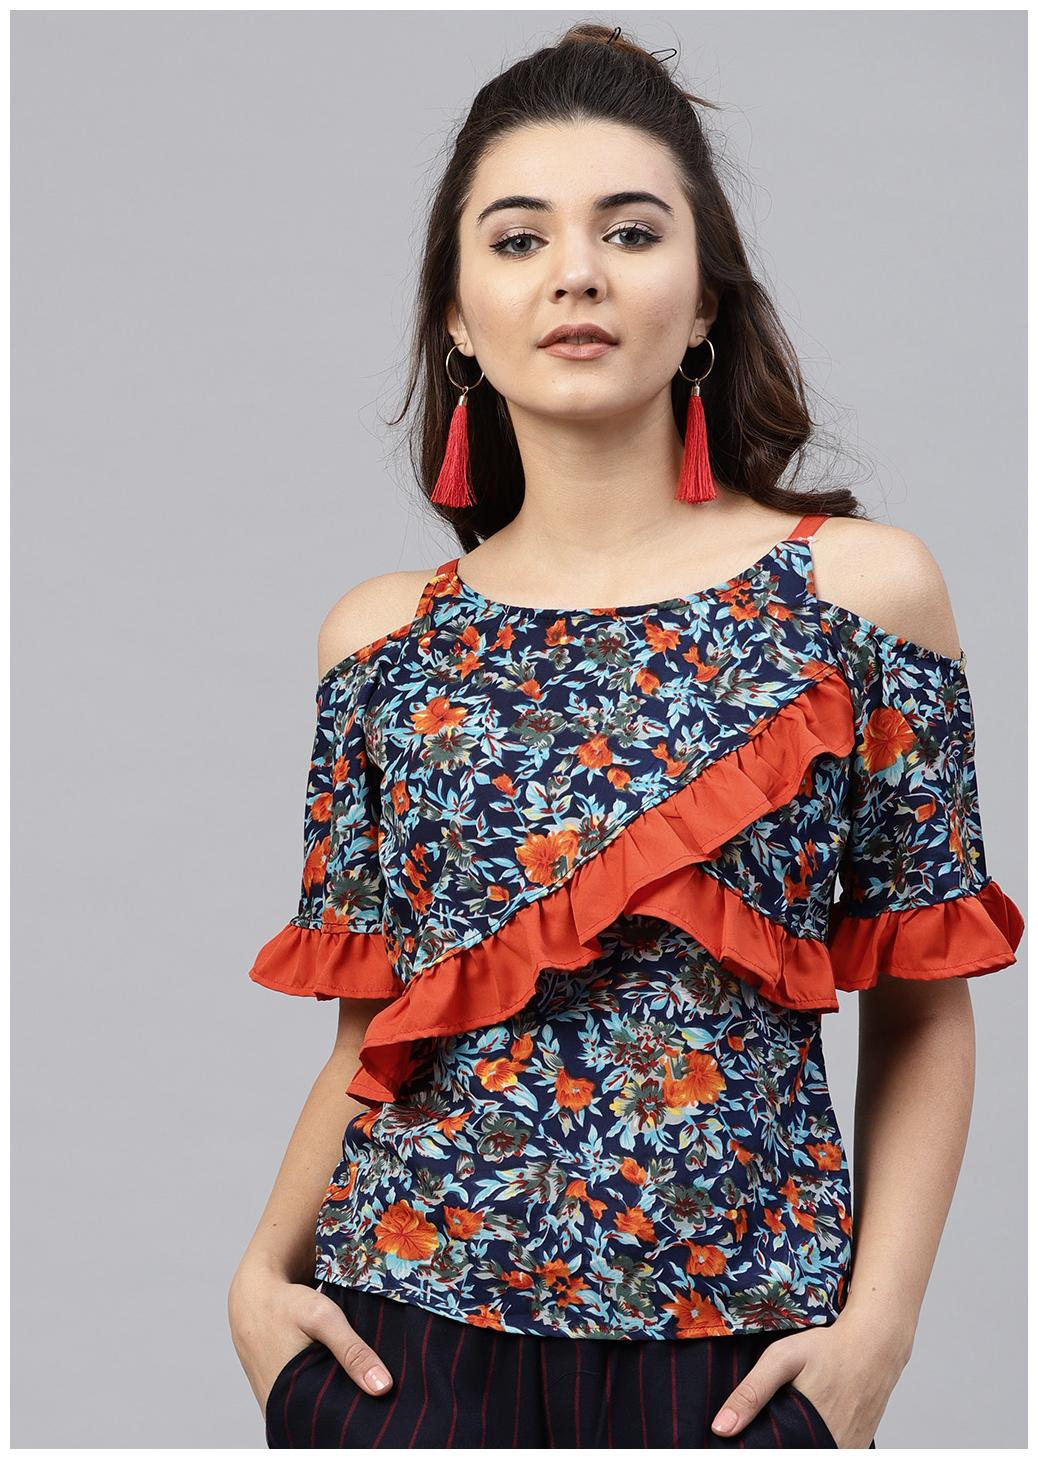 https://assetscdn1.paytm.com/images/catalog/product/A/AP/APPBLUE-FLORAL-BHUM69246F1516482/a_0..jpg